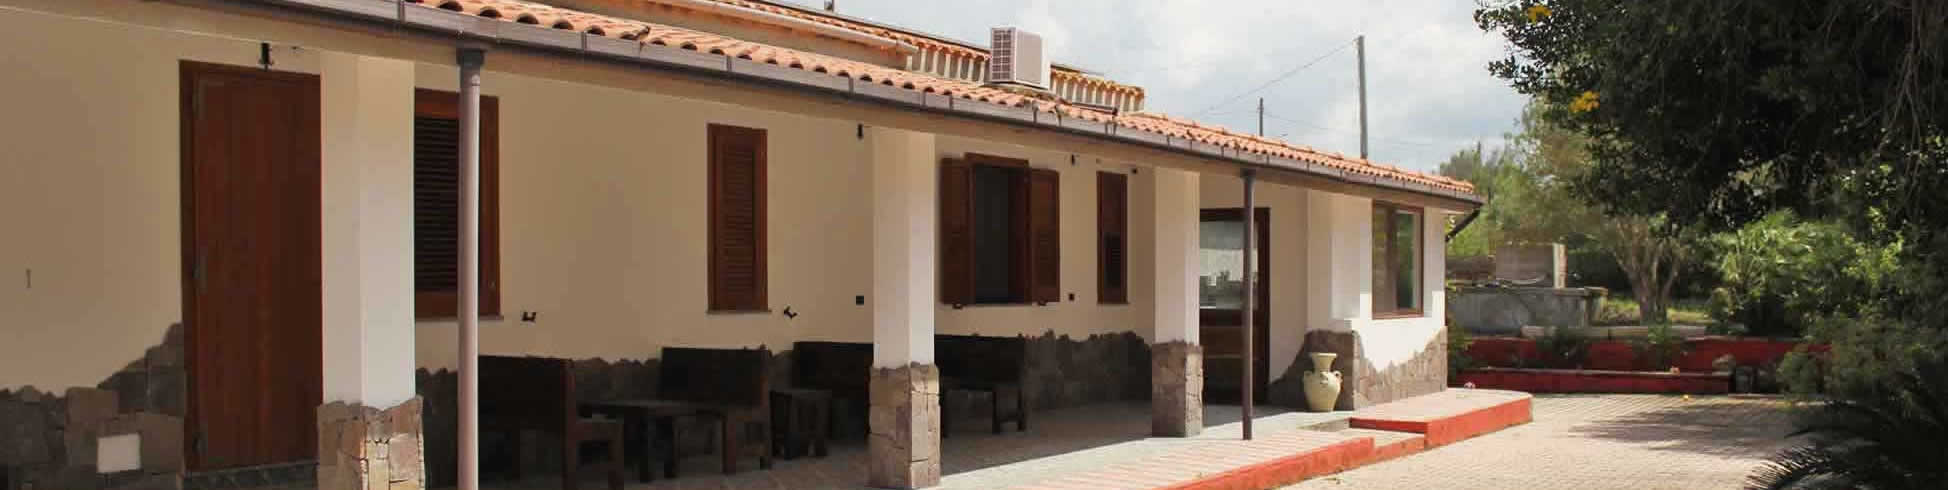 bed-and-breakfast-alghero-funtana-de-talia.jpg